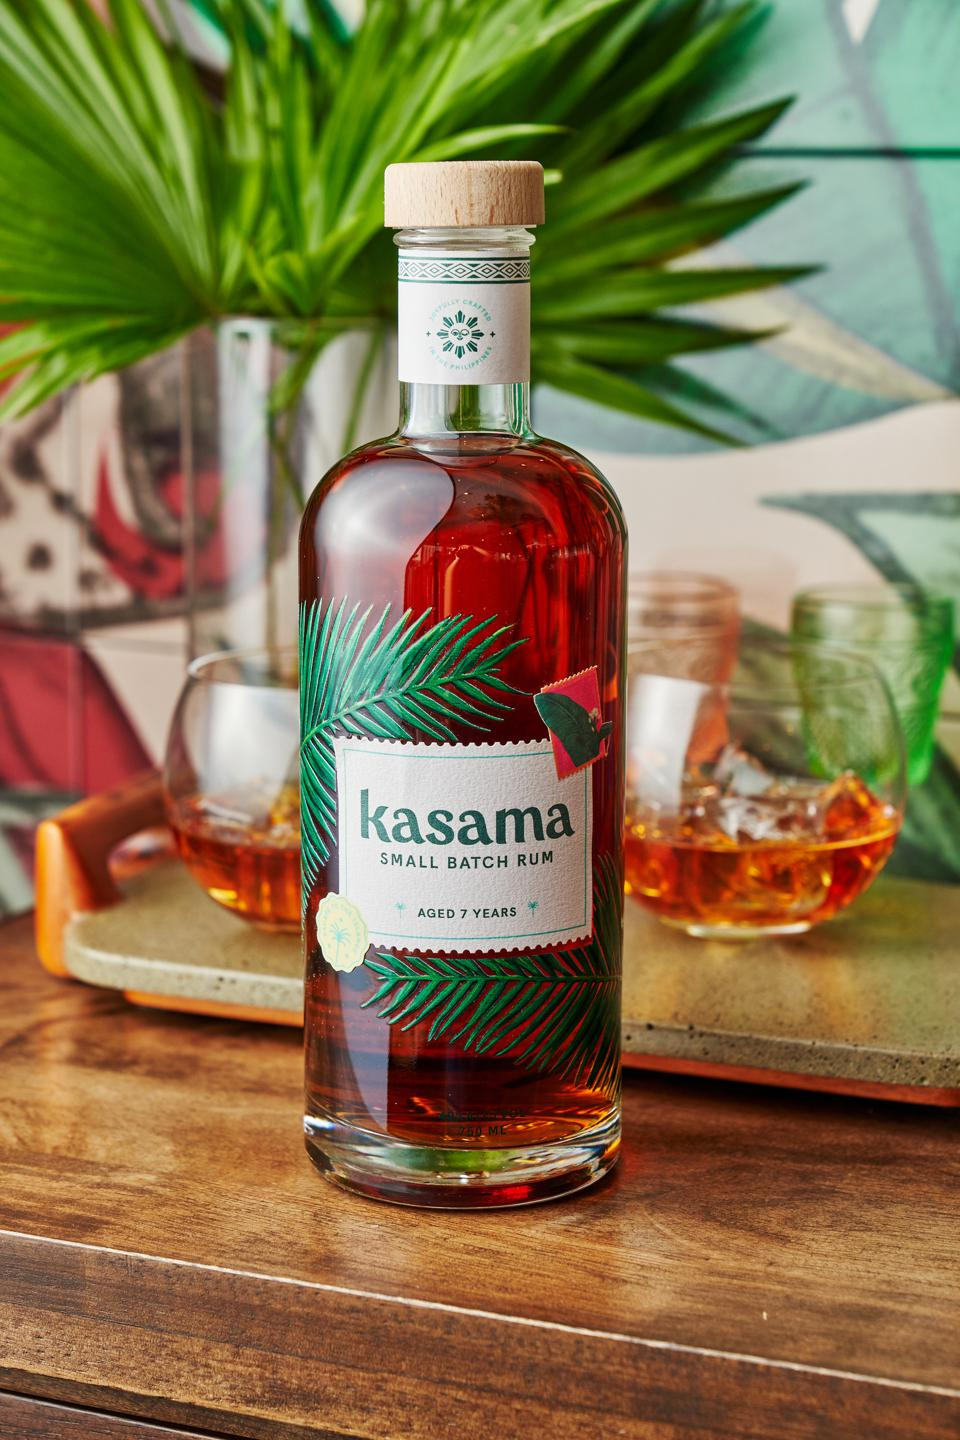 The artful bottle of Kasama rum is decorated with Filipino flora and fauna.